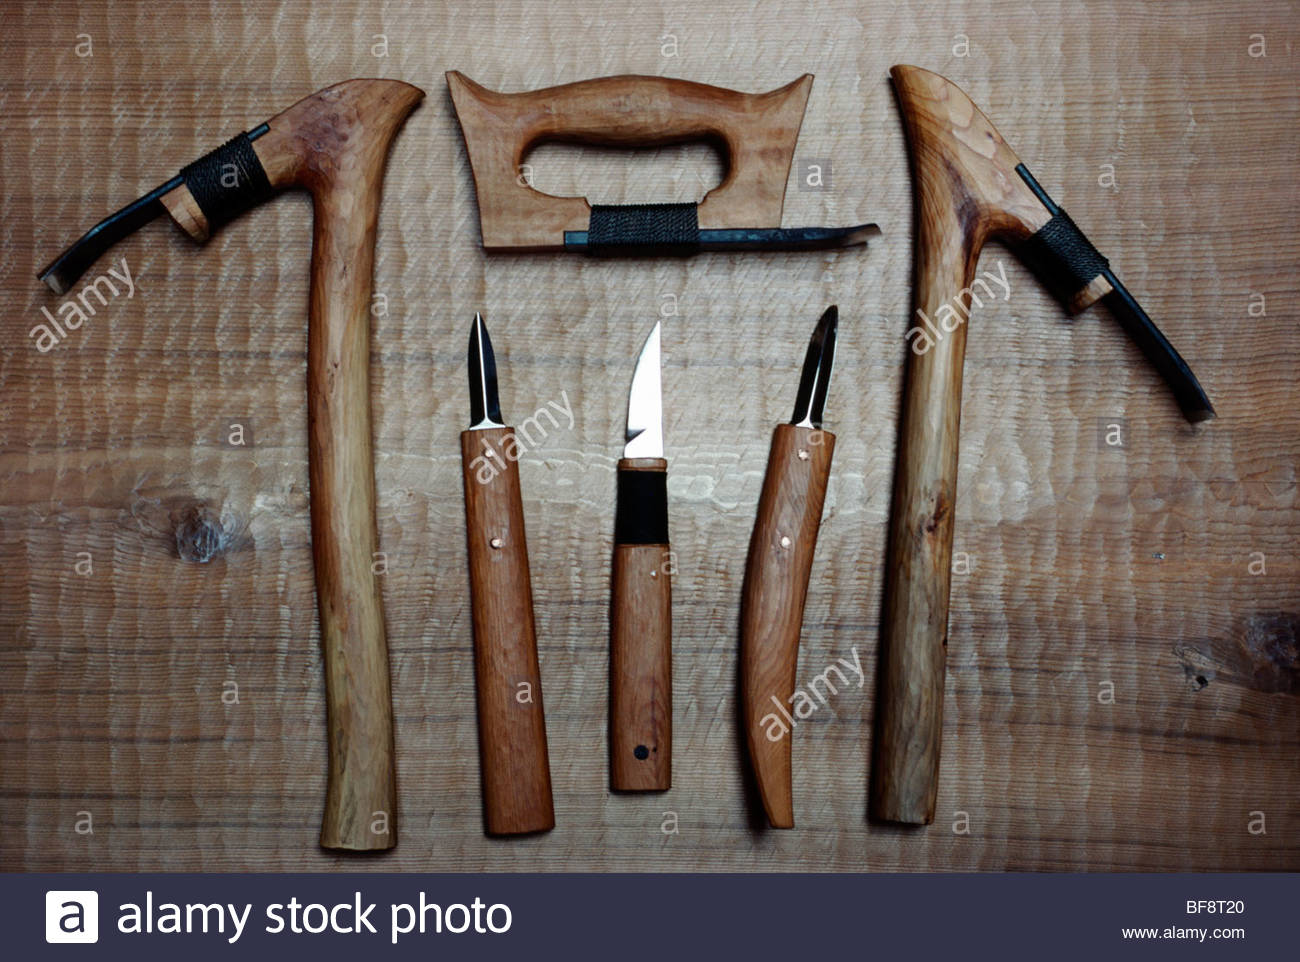 Woodcarving tools by Greg Blomberg, Lopez Island, British Columbia, Canada - Stock Image